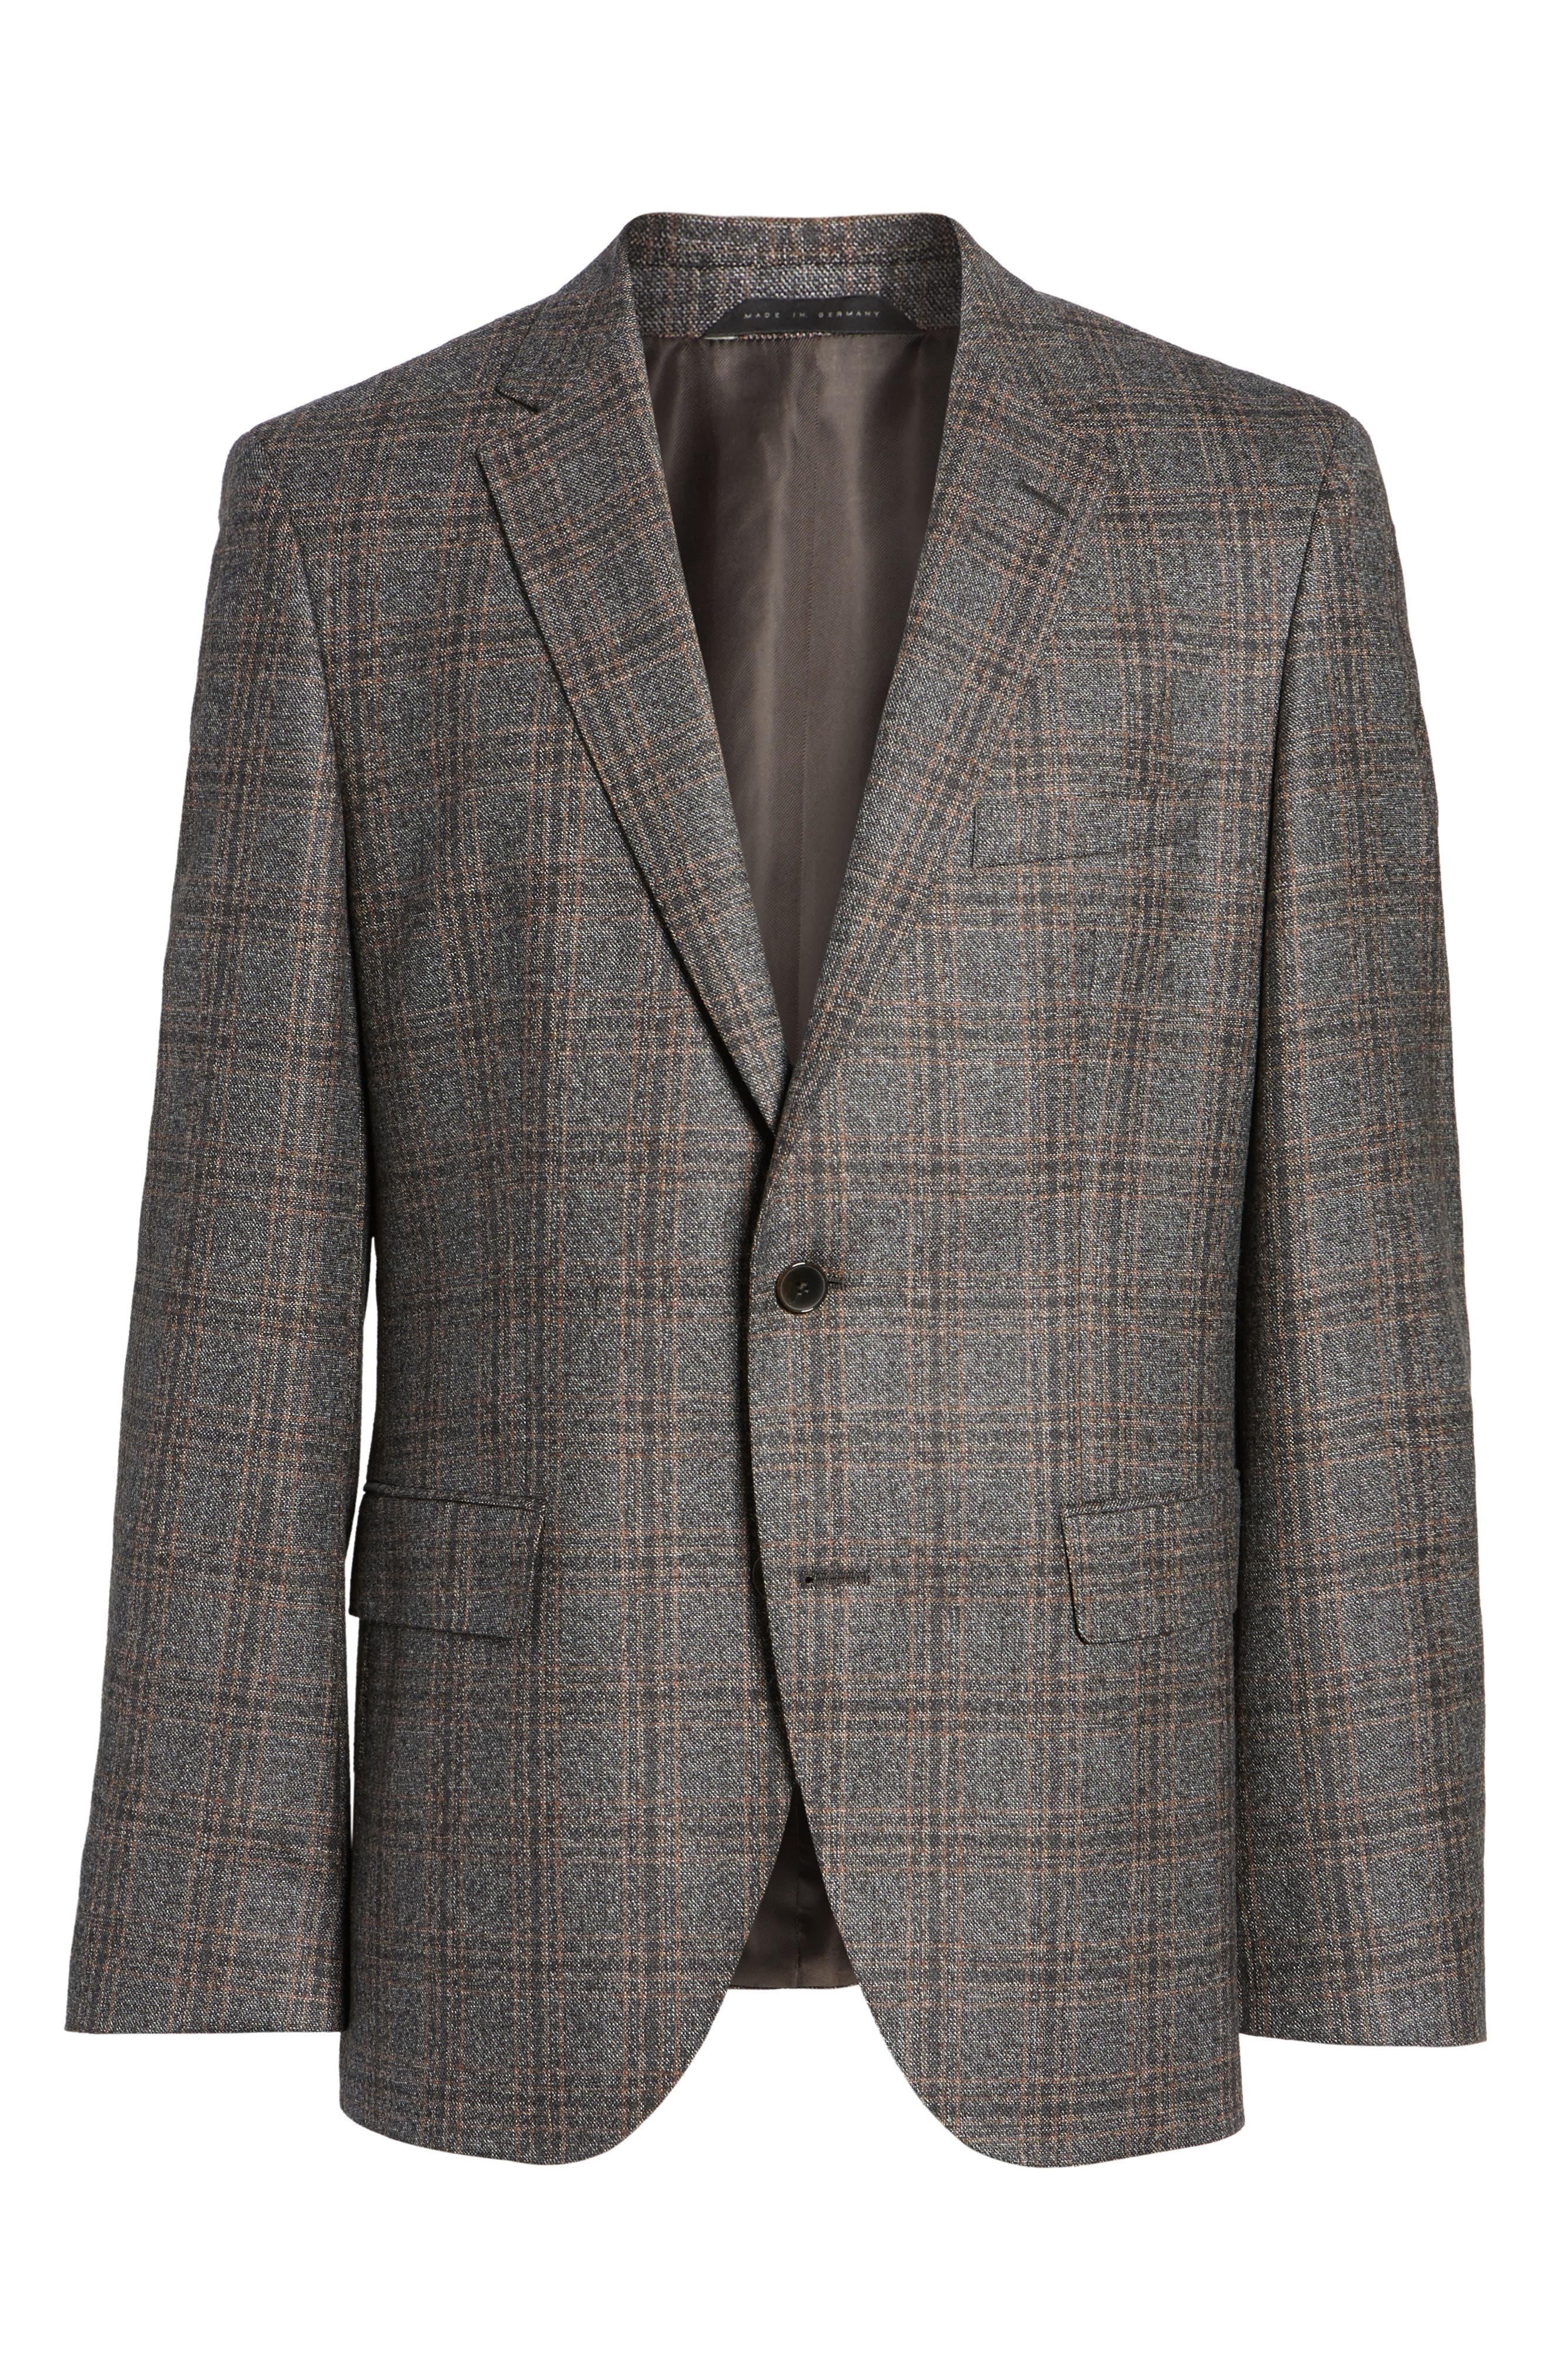 Jeen Trim Fit Plaid Wool Sport Coat,                             Alternate thumbnail 6, color,                             Dark Brown